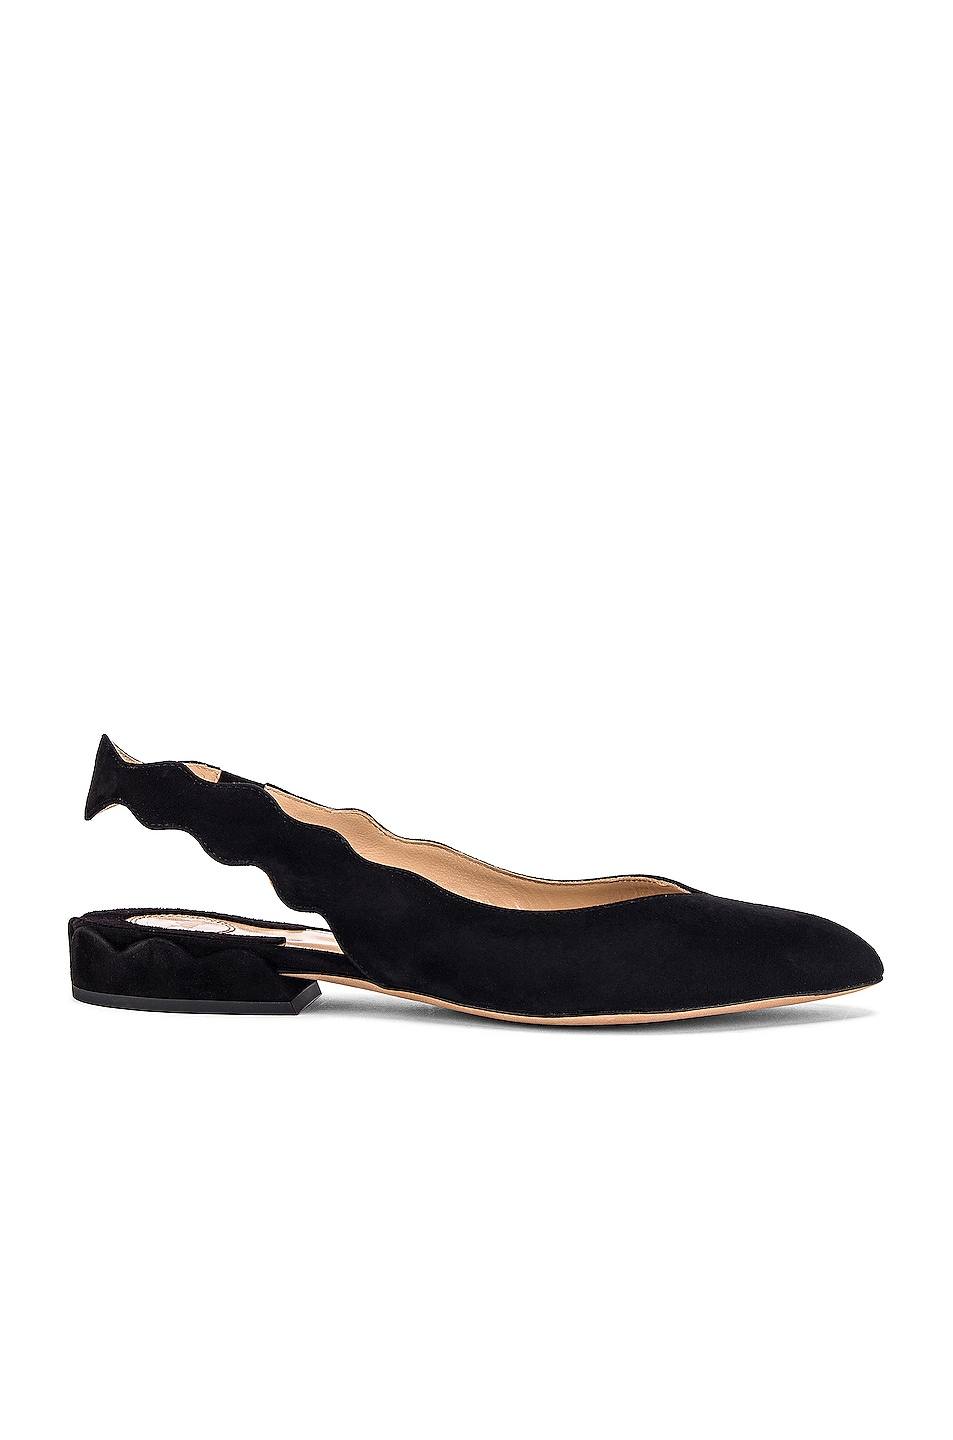 Image 1 of Chloe Laurena Slingback Flats in Black